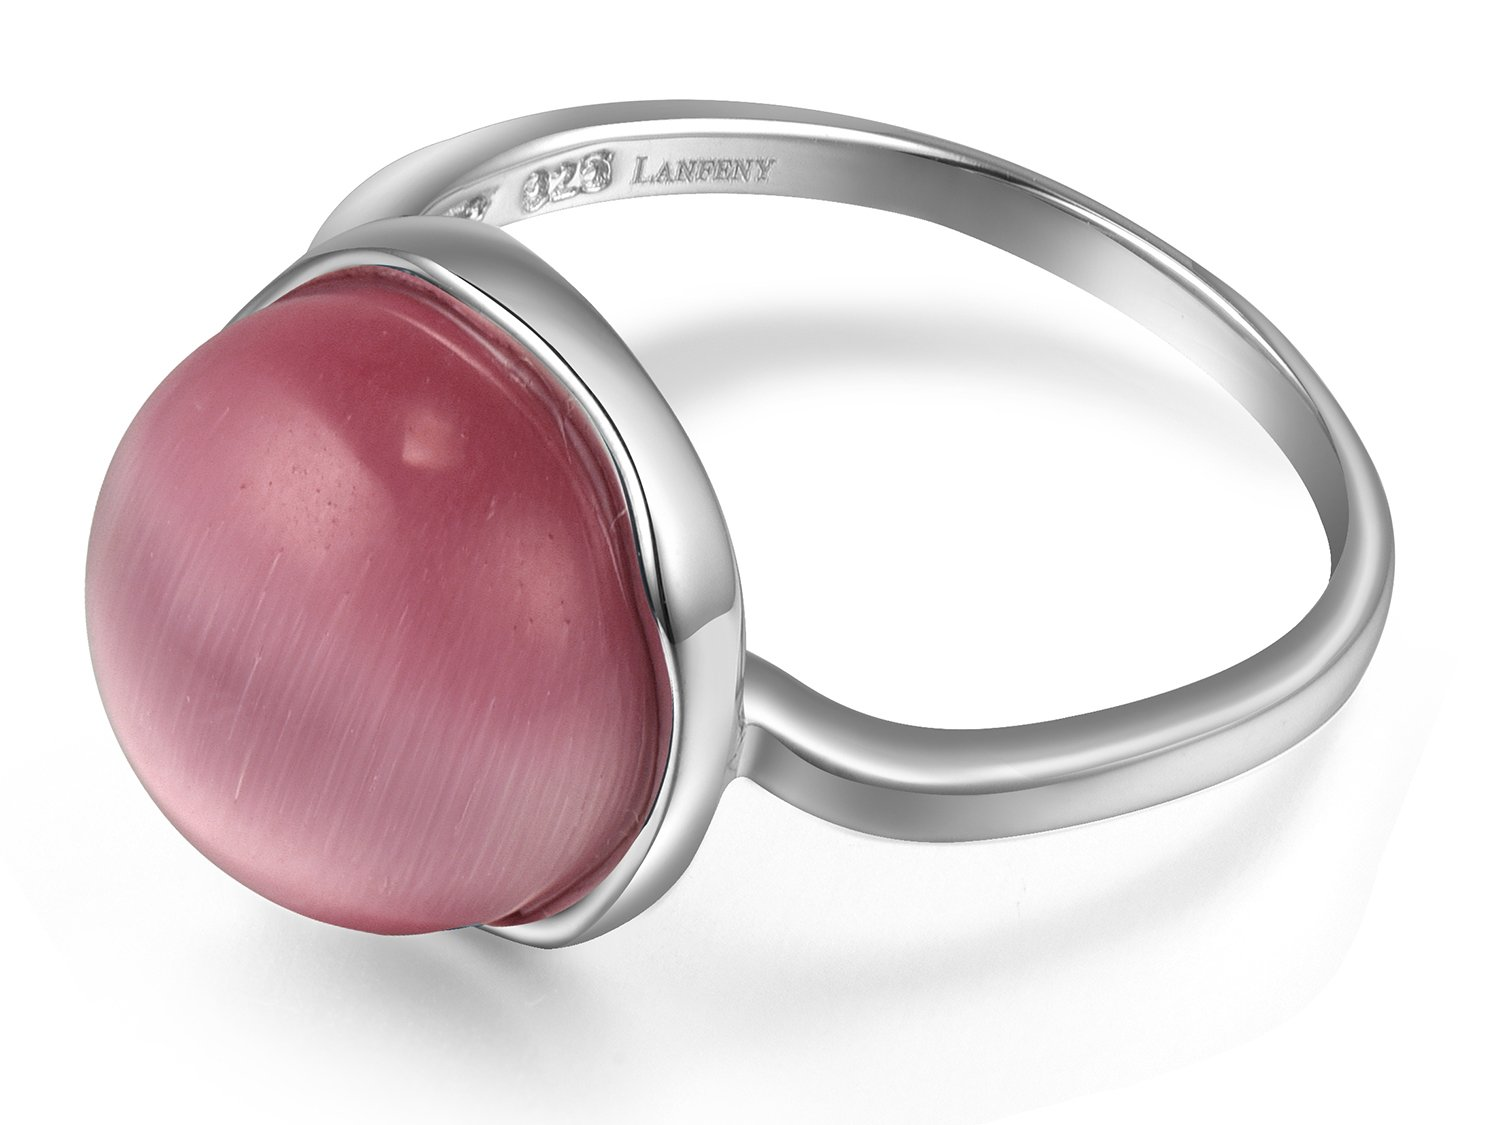 Lanfeny Rhodium Plated 925 Sterling Silver Ring with Simulated Watermelon Pink Cat's Eye Ball Solitaire,Size 8 by LANFENY (Image #2)